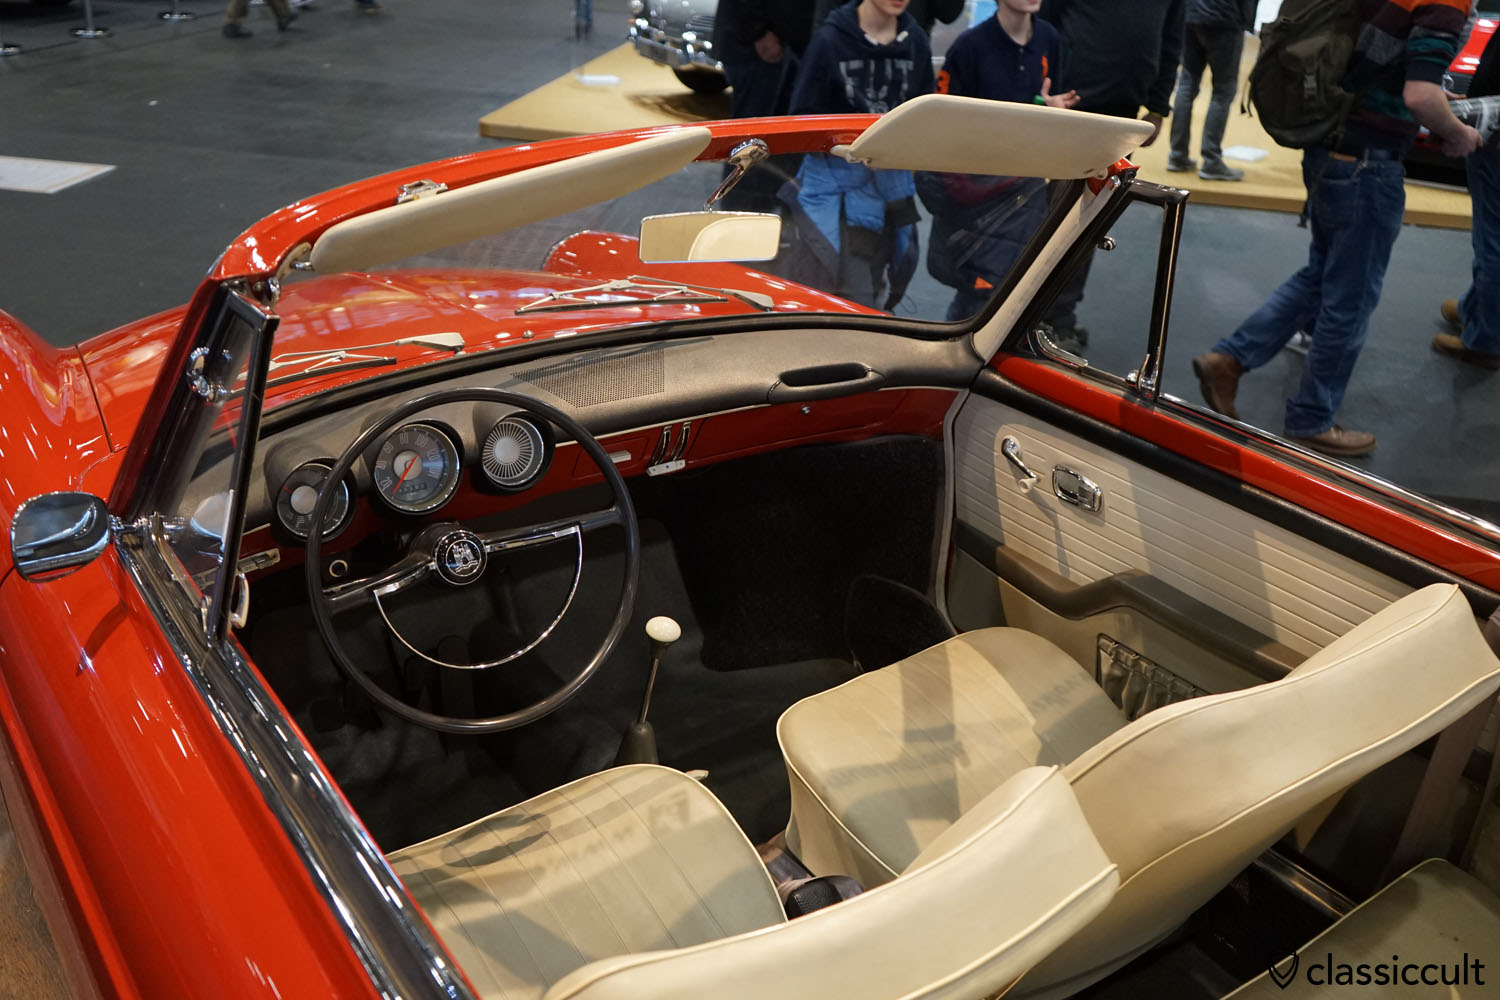 VW 1500 Type 3 Cabrio dashboard, Prototyp 1961